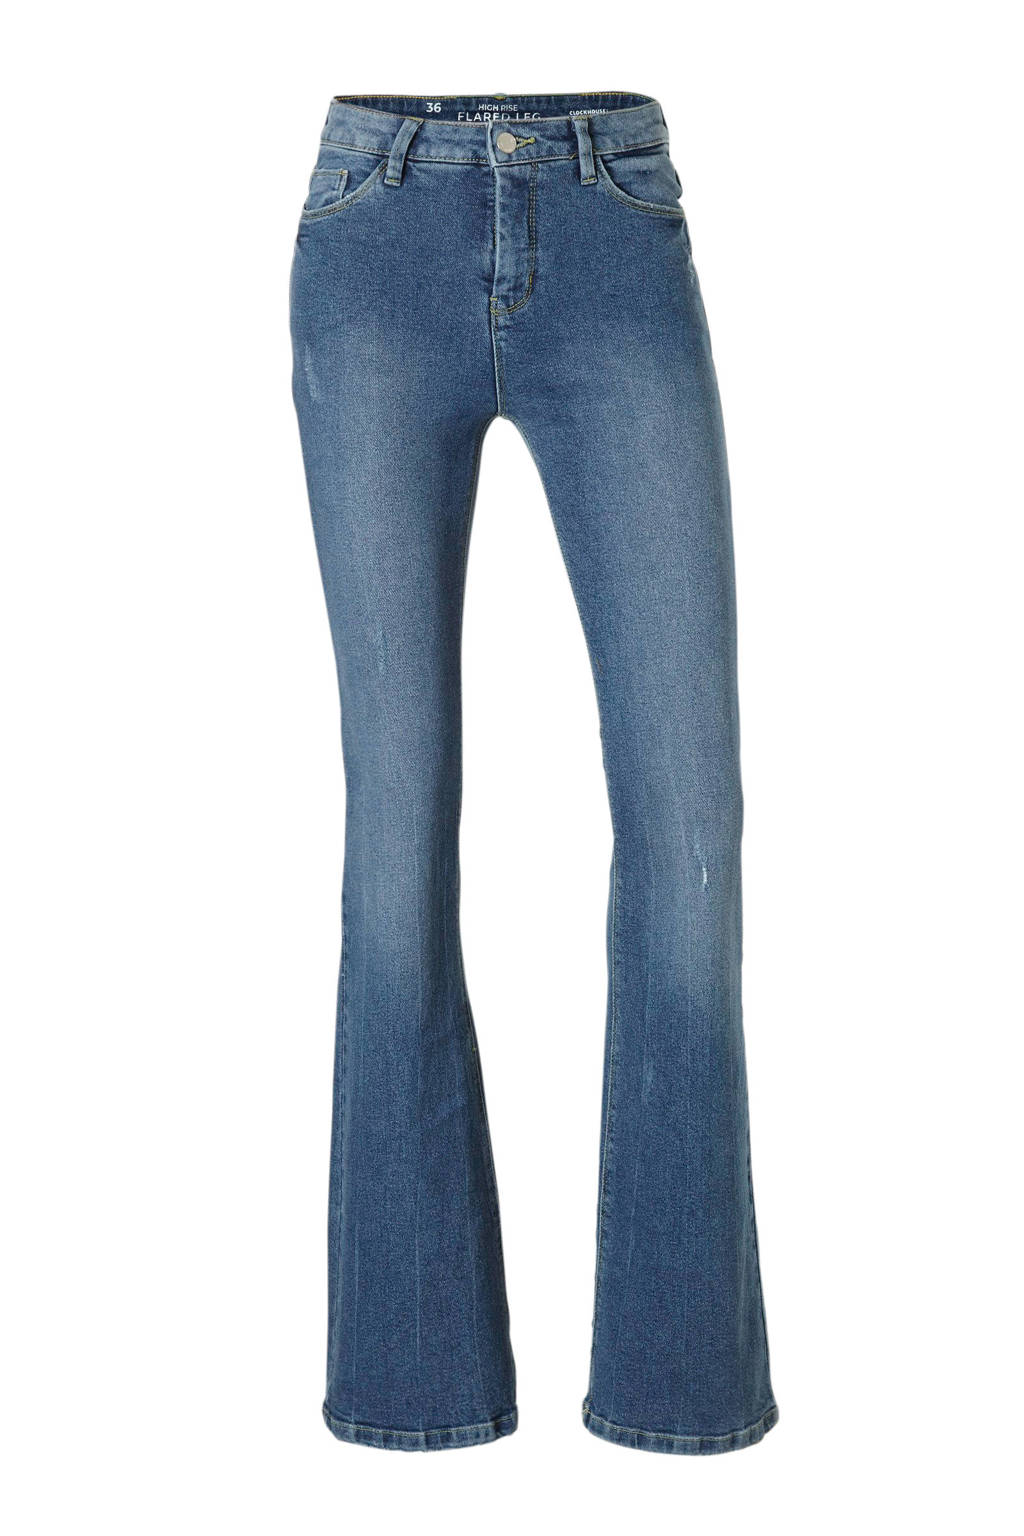 C&A Clockhouse high waist flared jeans, Stonewashed